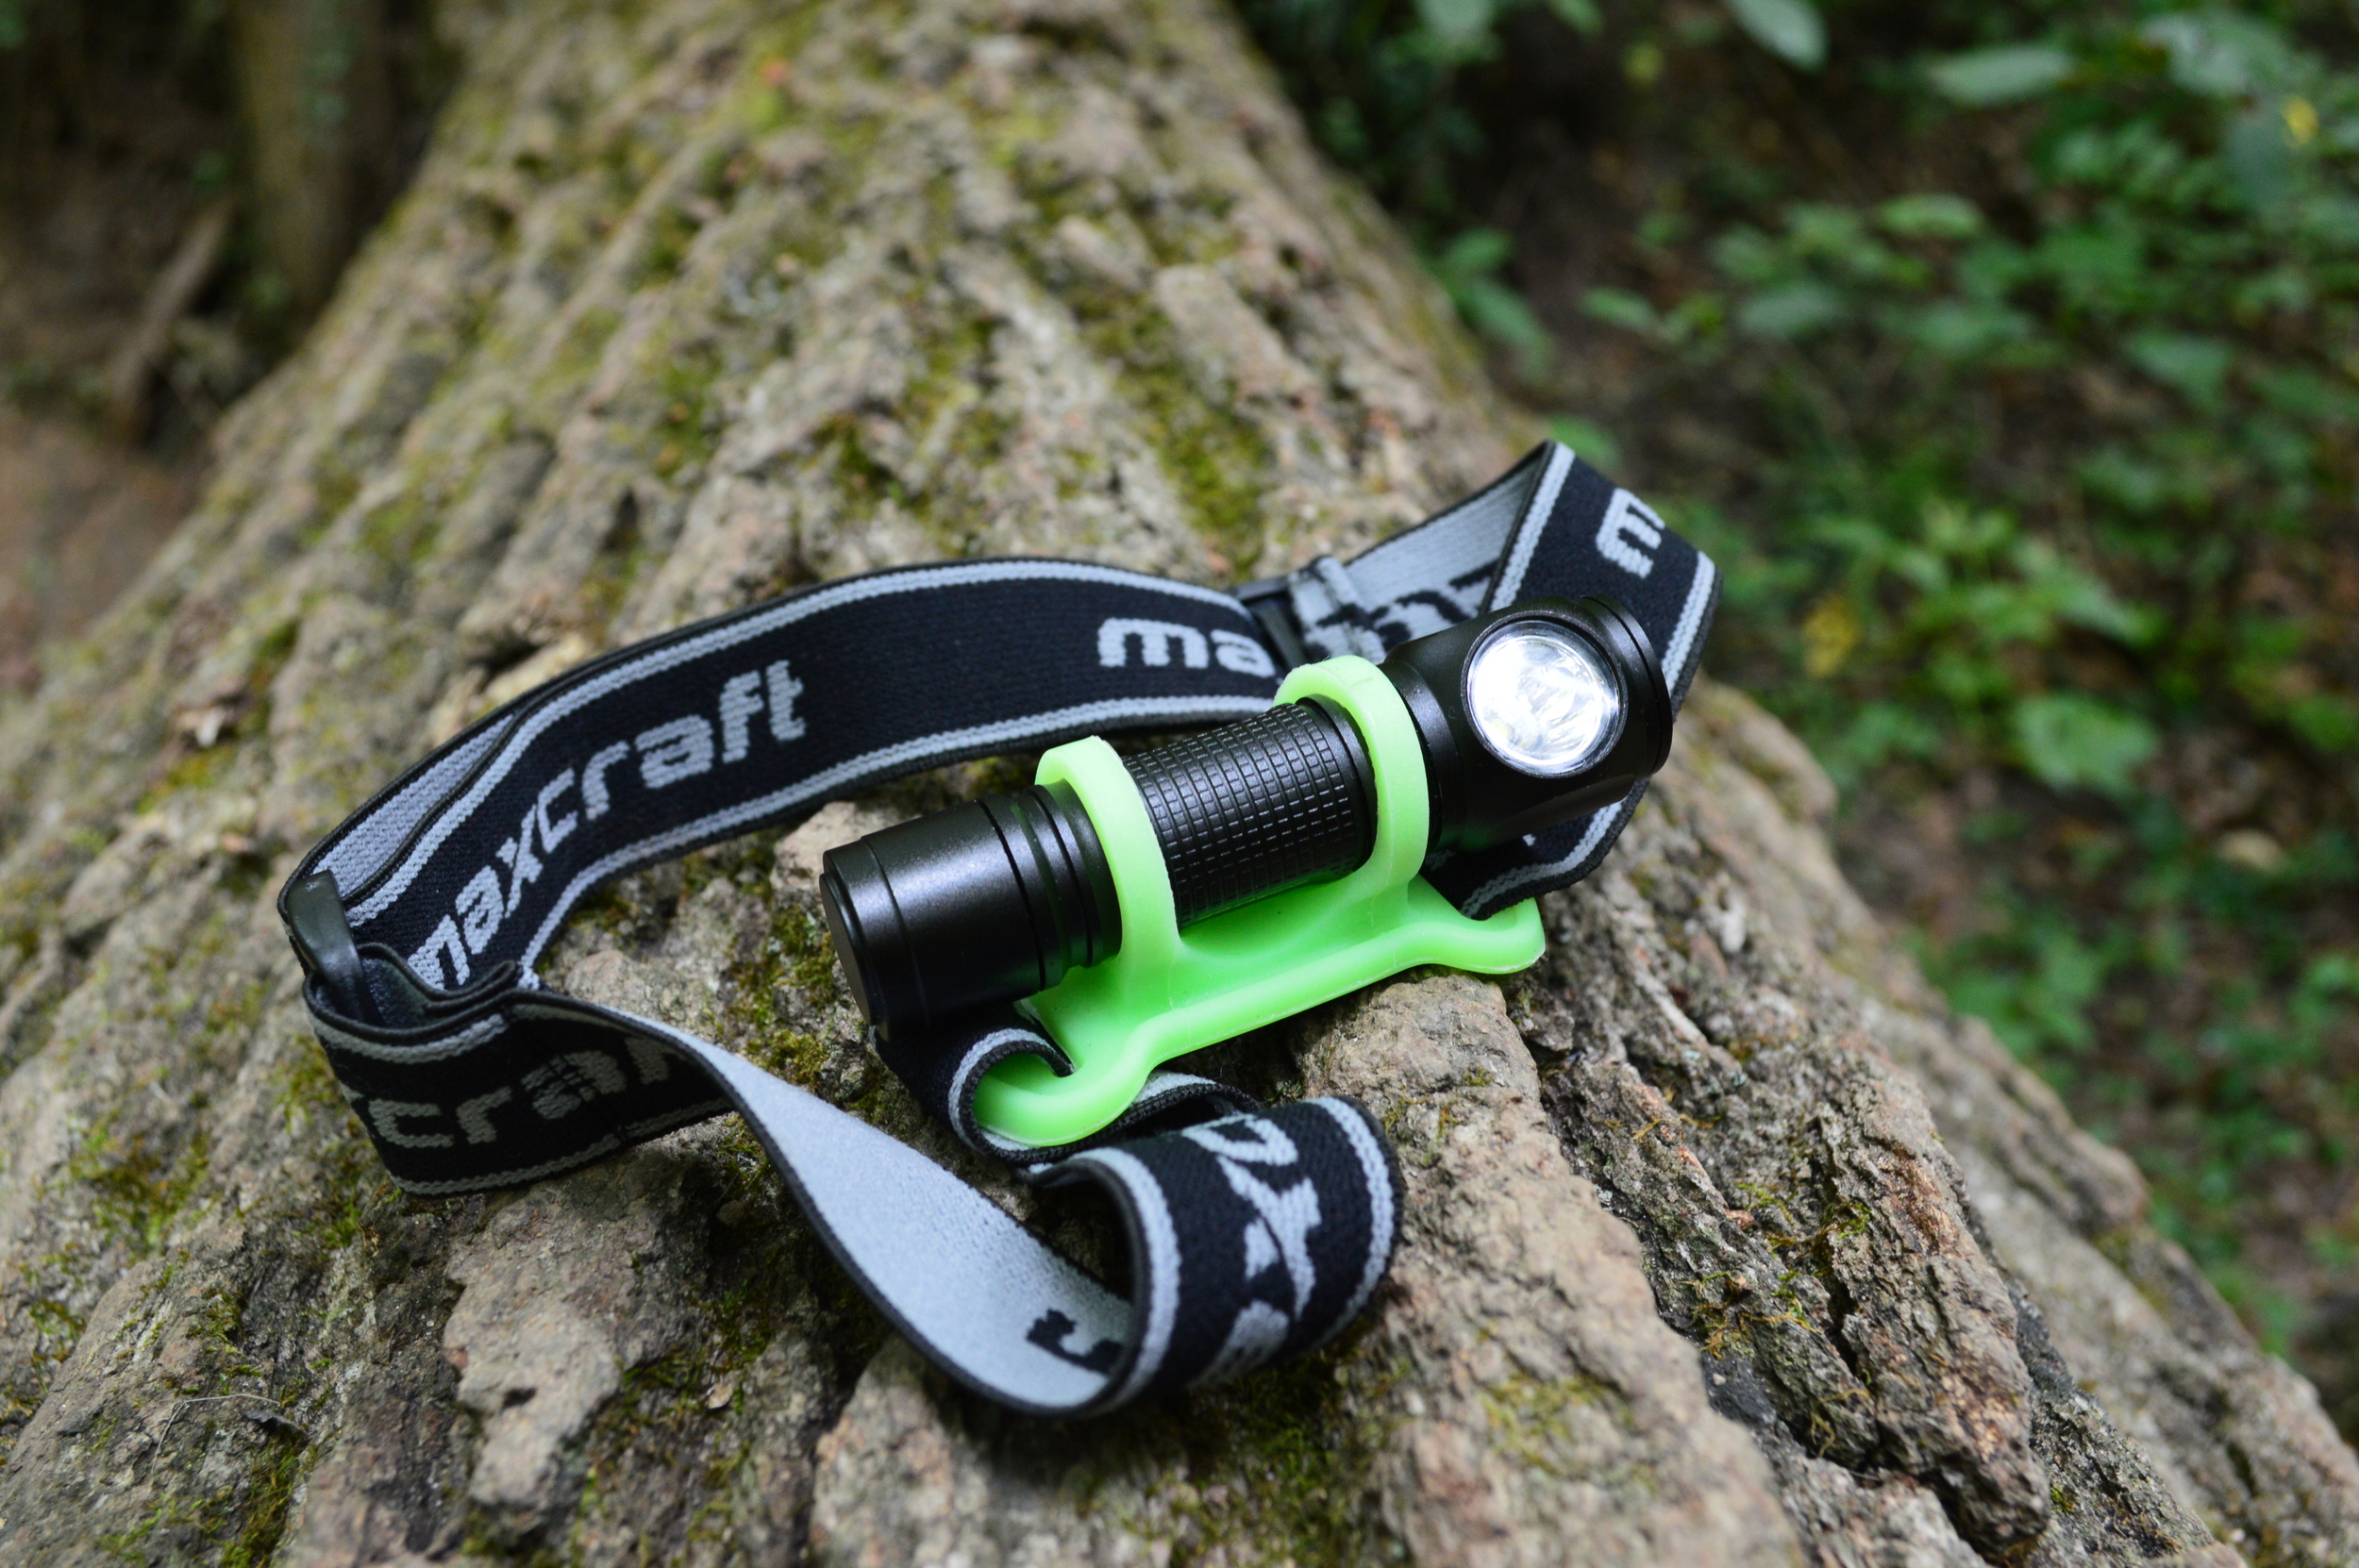 Maxcraft 3 Watt LED Mini Multilight with Headband Review